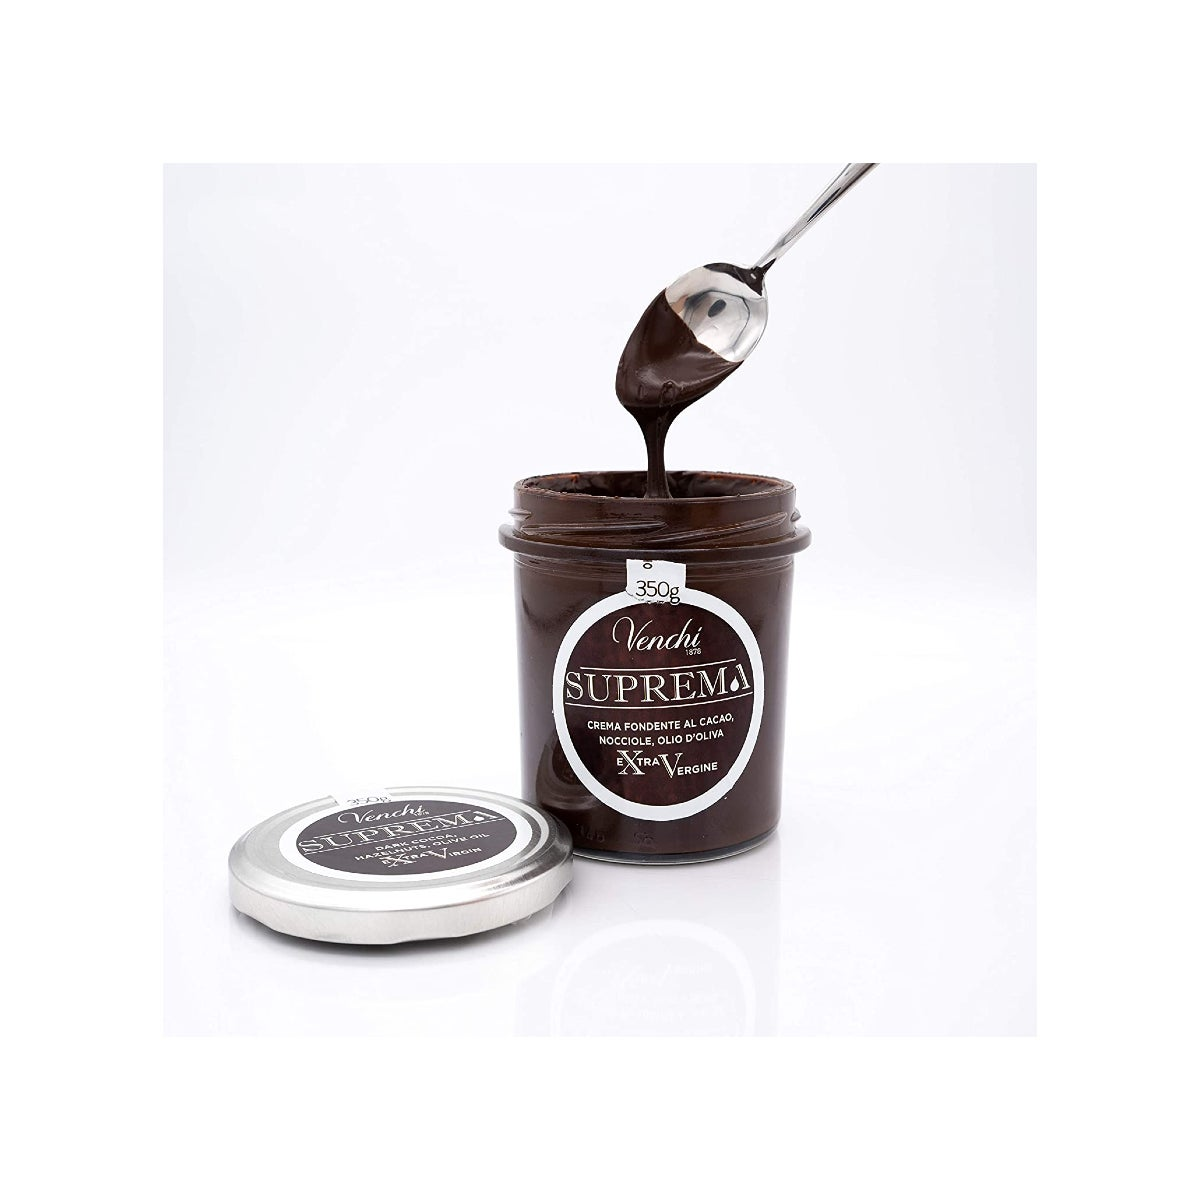 Best Chocolate Gifts Option Venchi Suprema Dark Chocolate Spread with Extra Virgin Olive Oil